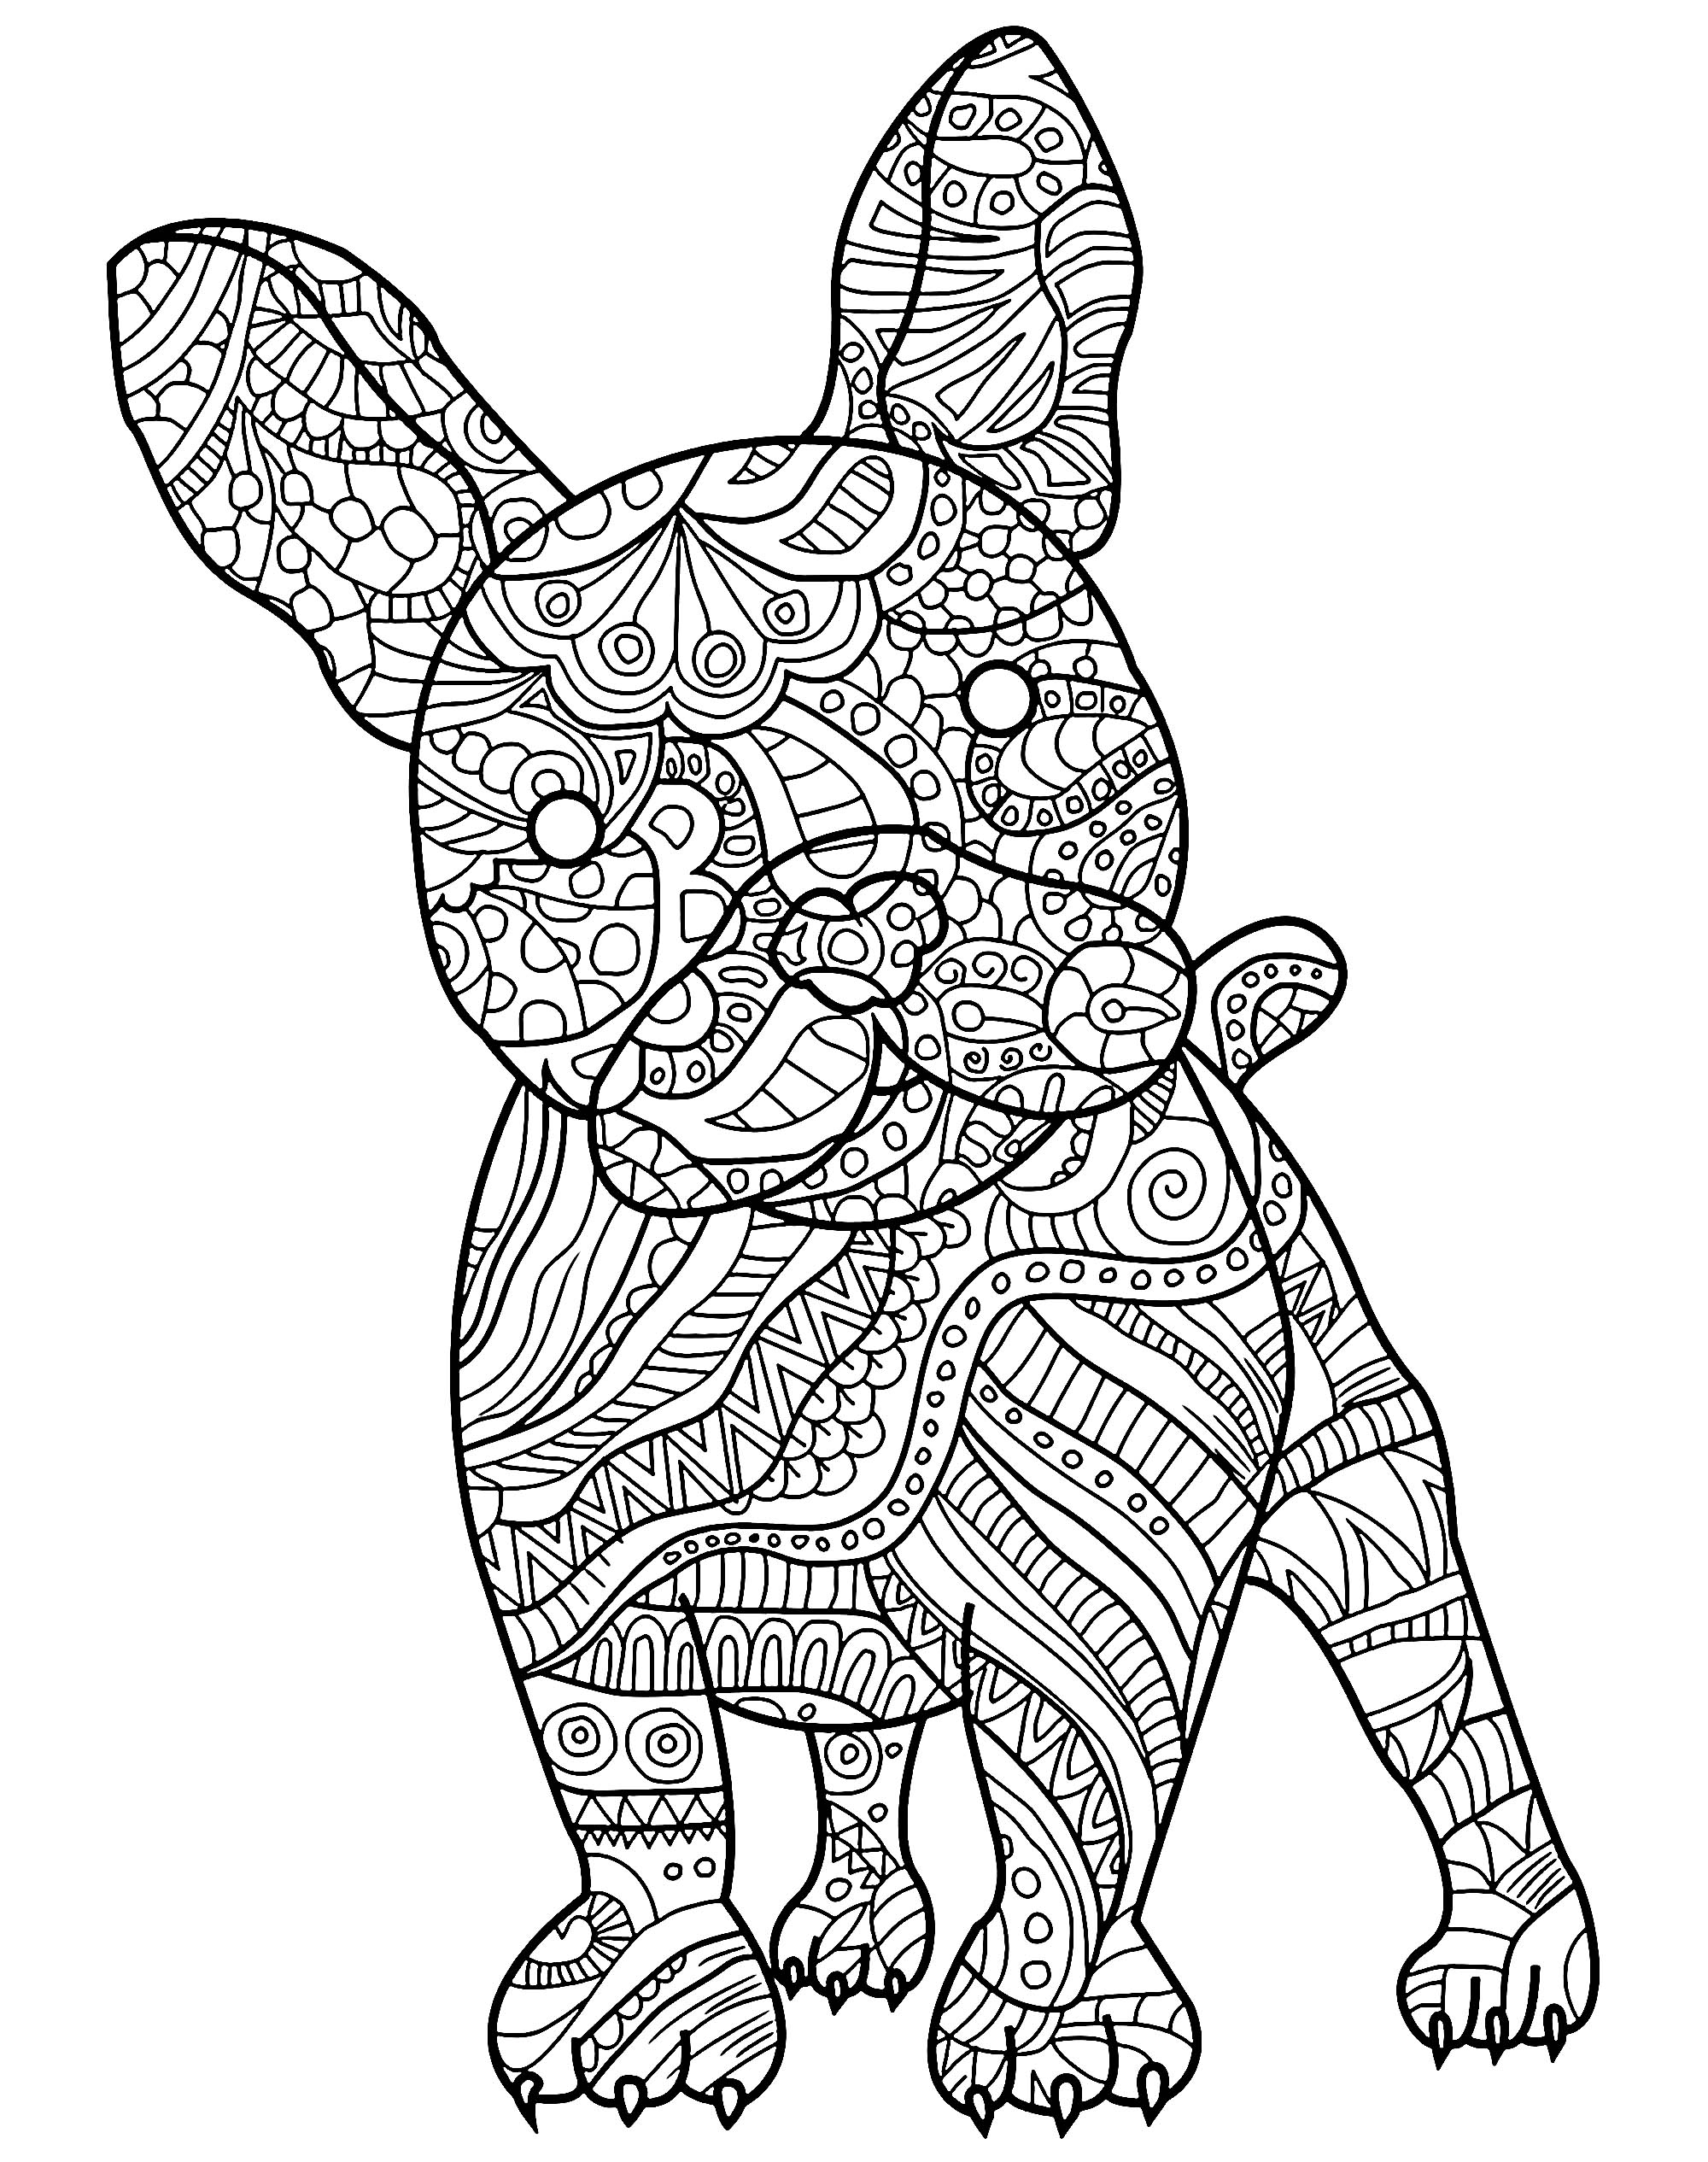 kids dog coloring pages dog free to color for kids dogs kids coloring pages coloring pages dog kids